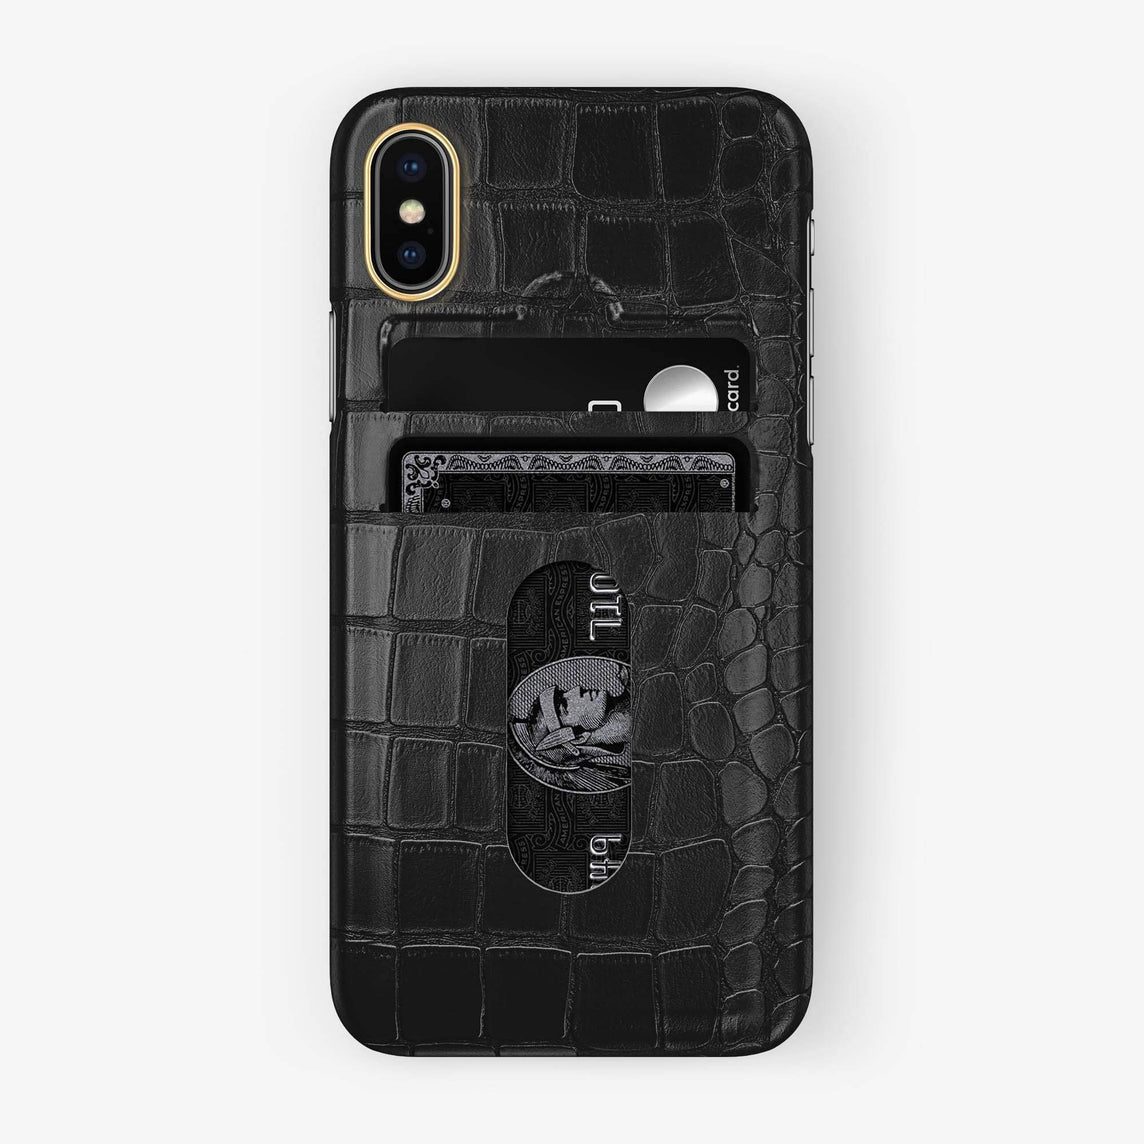 Alligator Card Holder Case iPhone Xs Max | Black - Yellow Gold - Hadoro